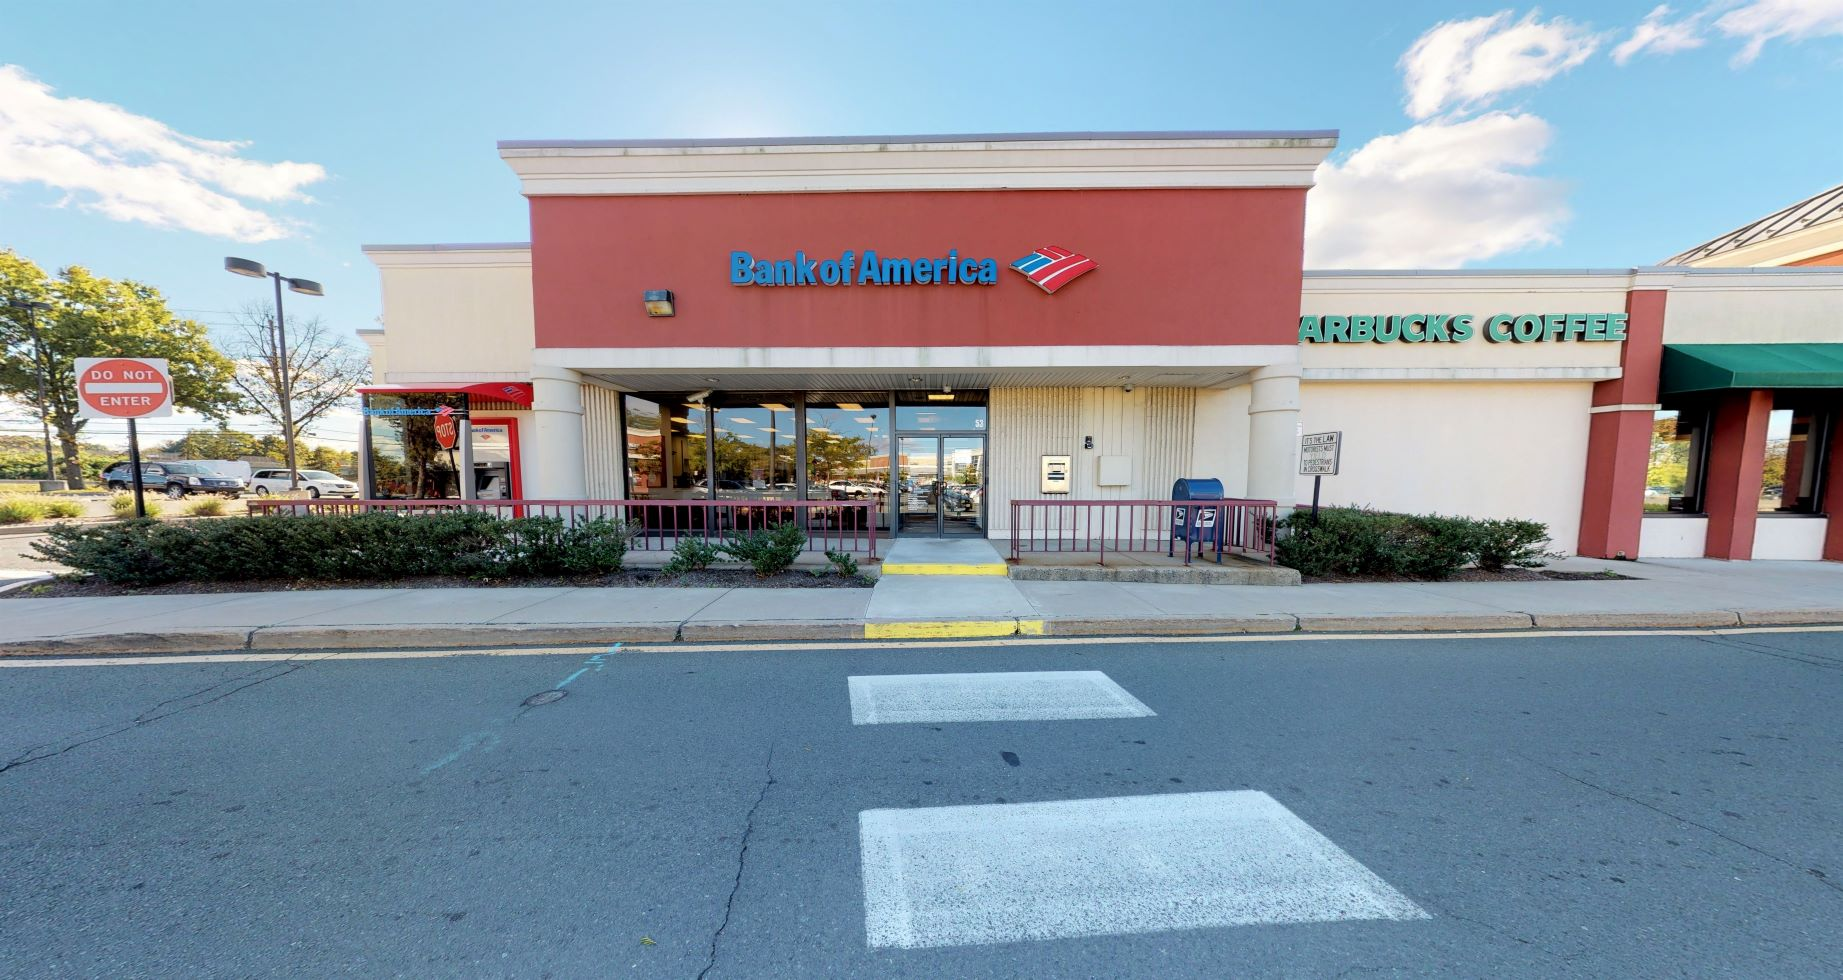 Bank of America financial center with drive-thru ATM | 3371 US Highway 1, Lawrenceville, NJ 08648